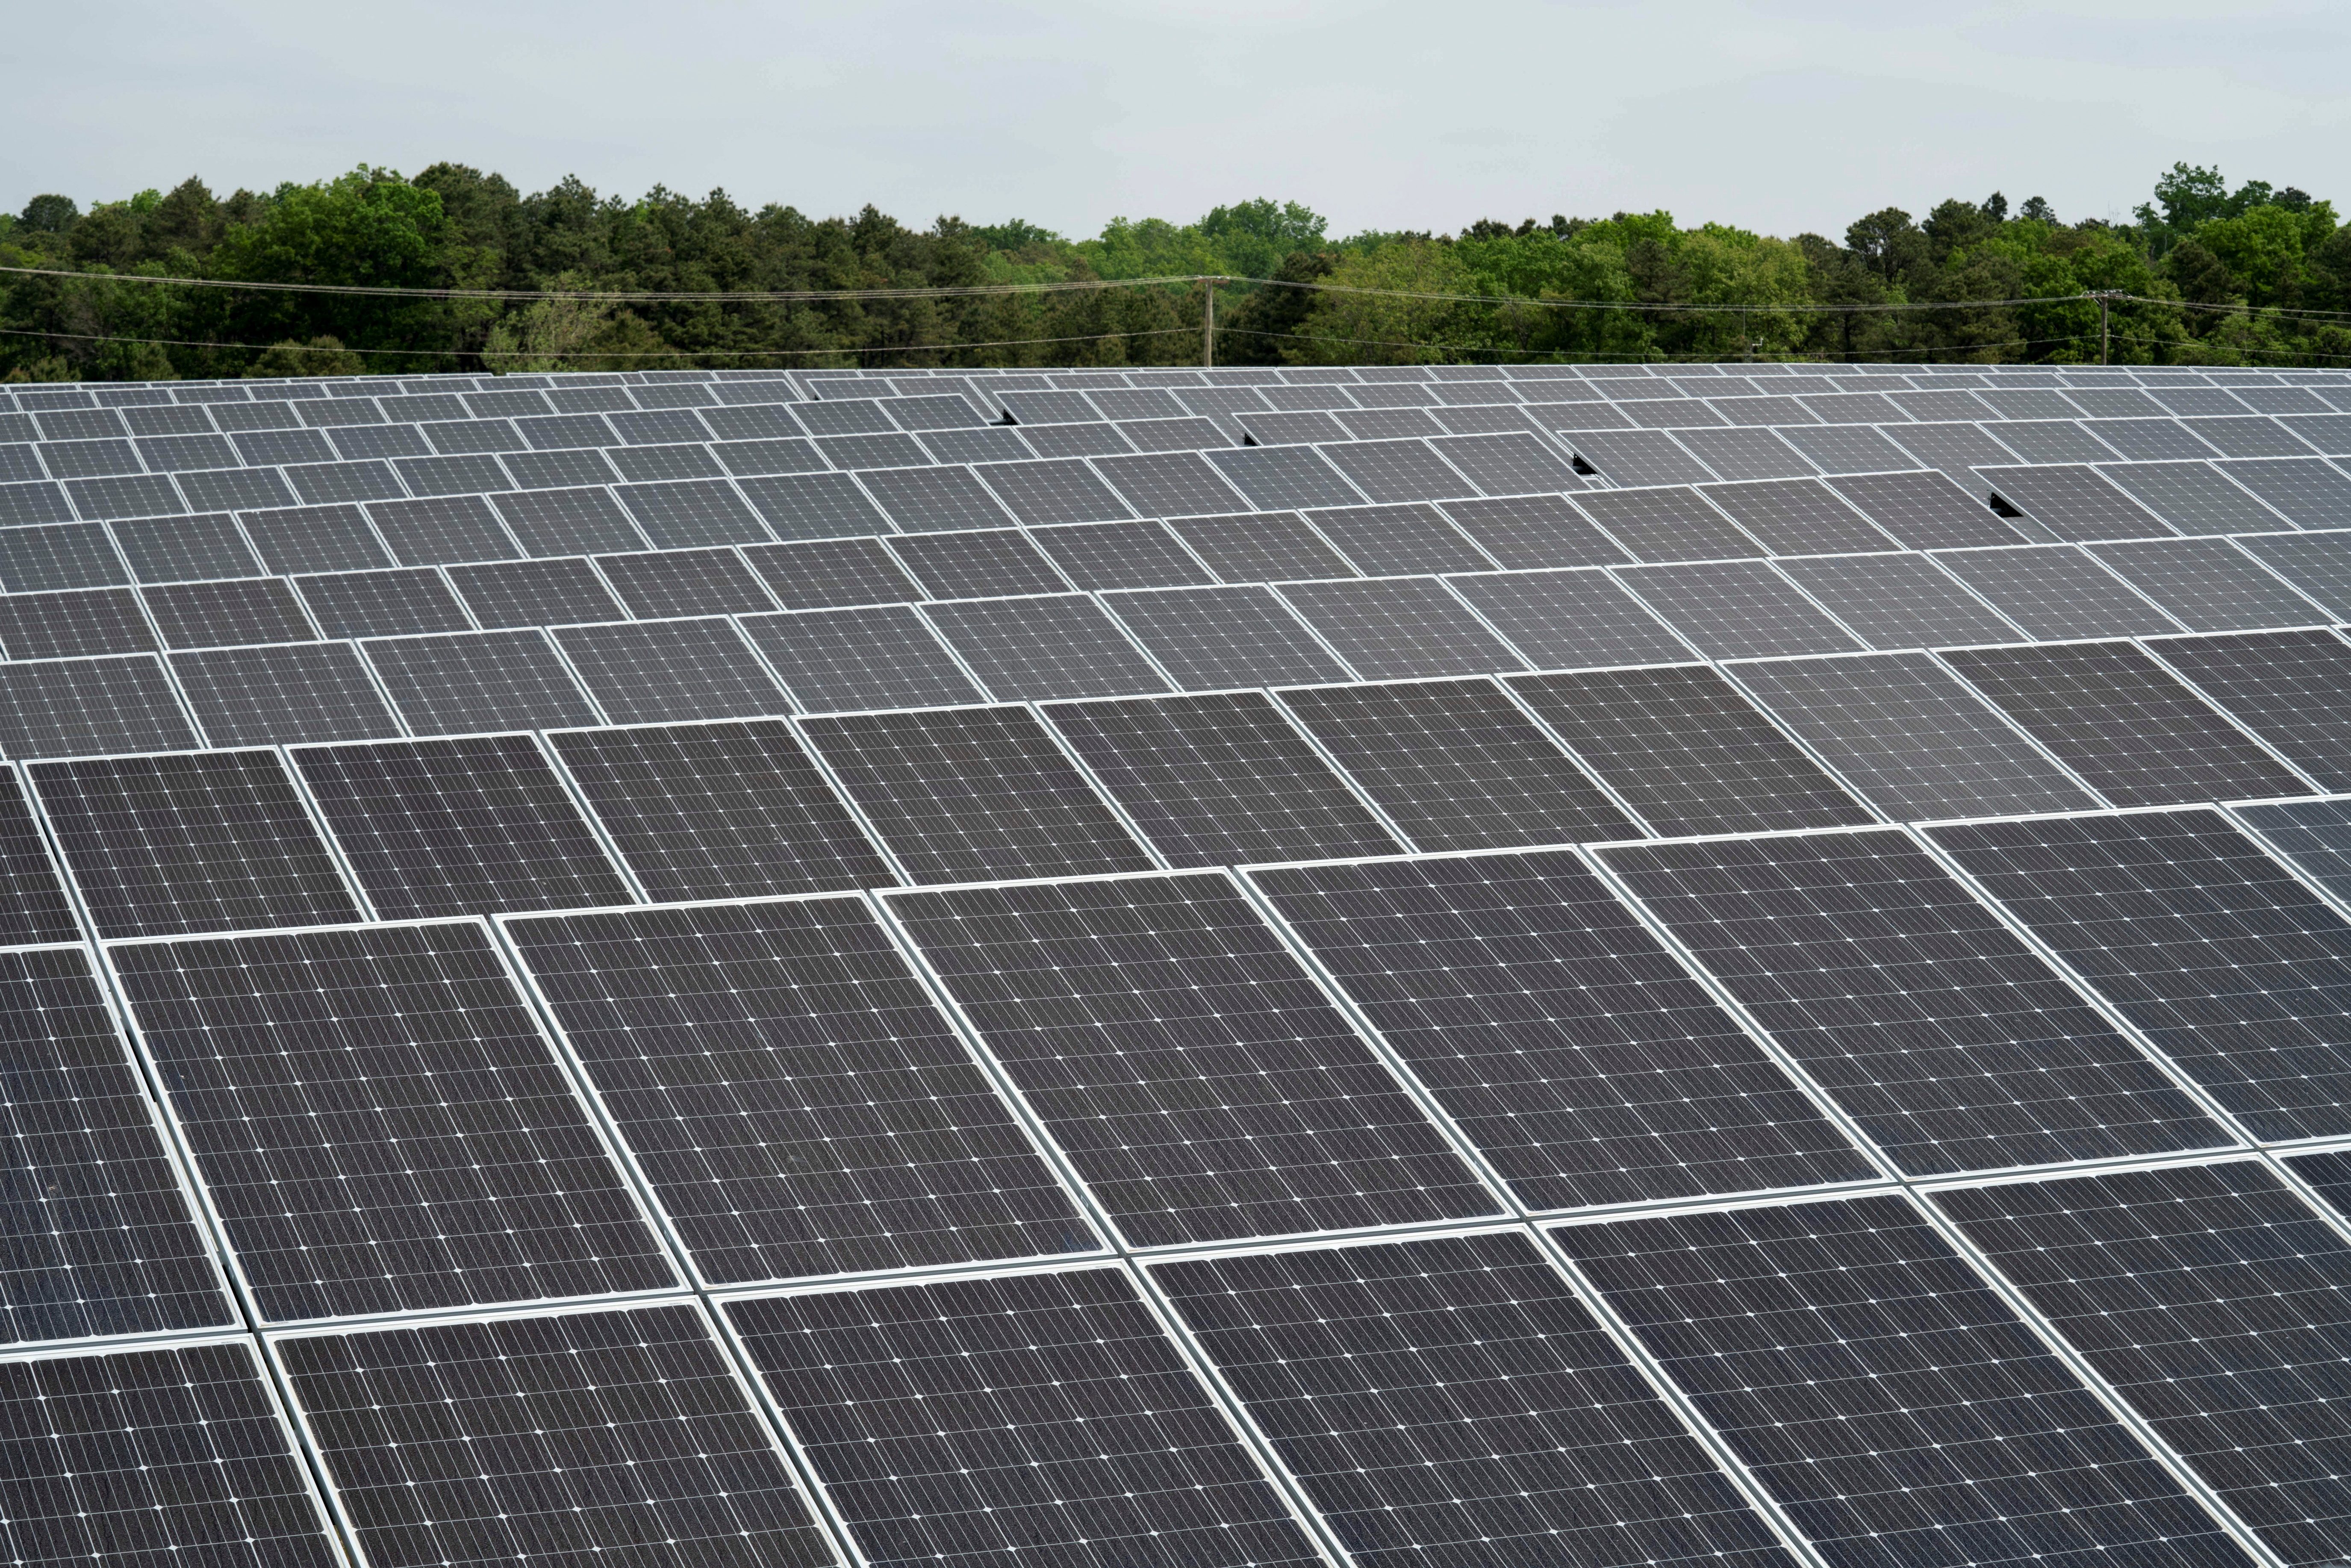 Rows of solar panels at the Toms River Solar Farm which was built on an EPA Superfund site in Toms River, New Jersey, U.S., 26 May, 2021. Picture taken May 26, 2021. REUTERS/Dane Rhys/File Photo